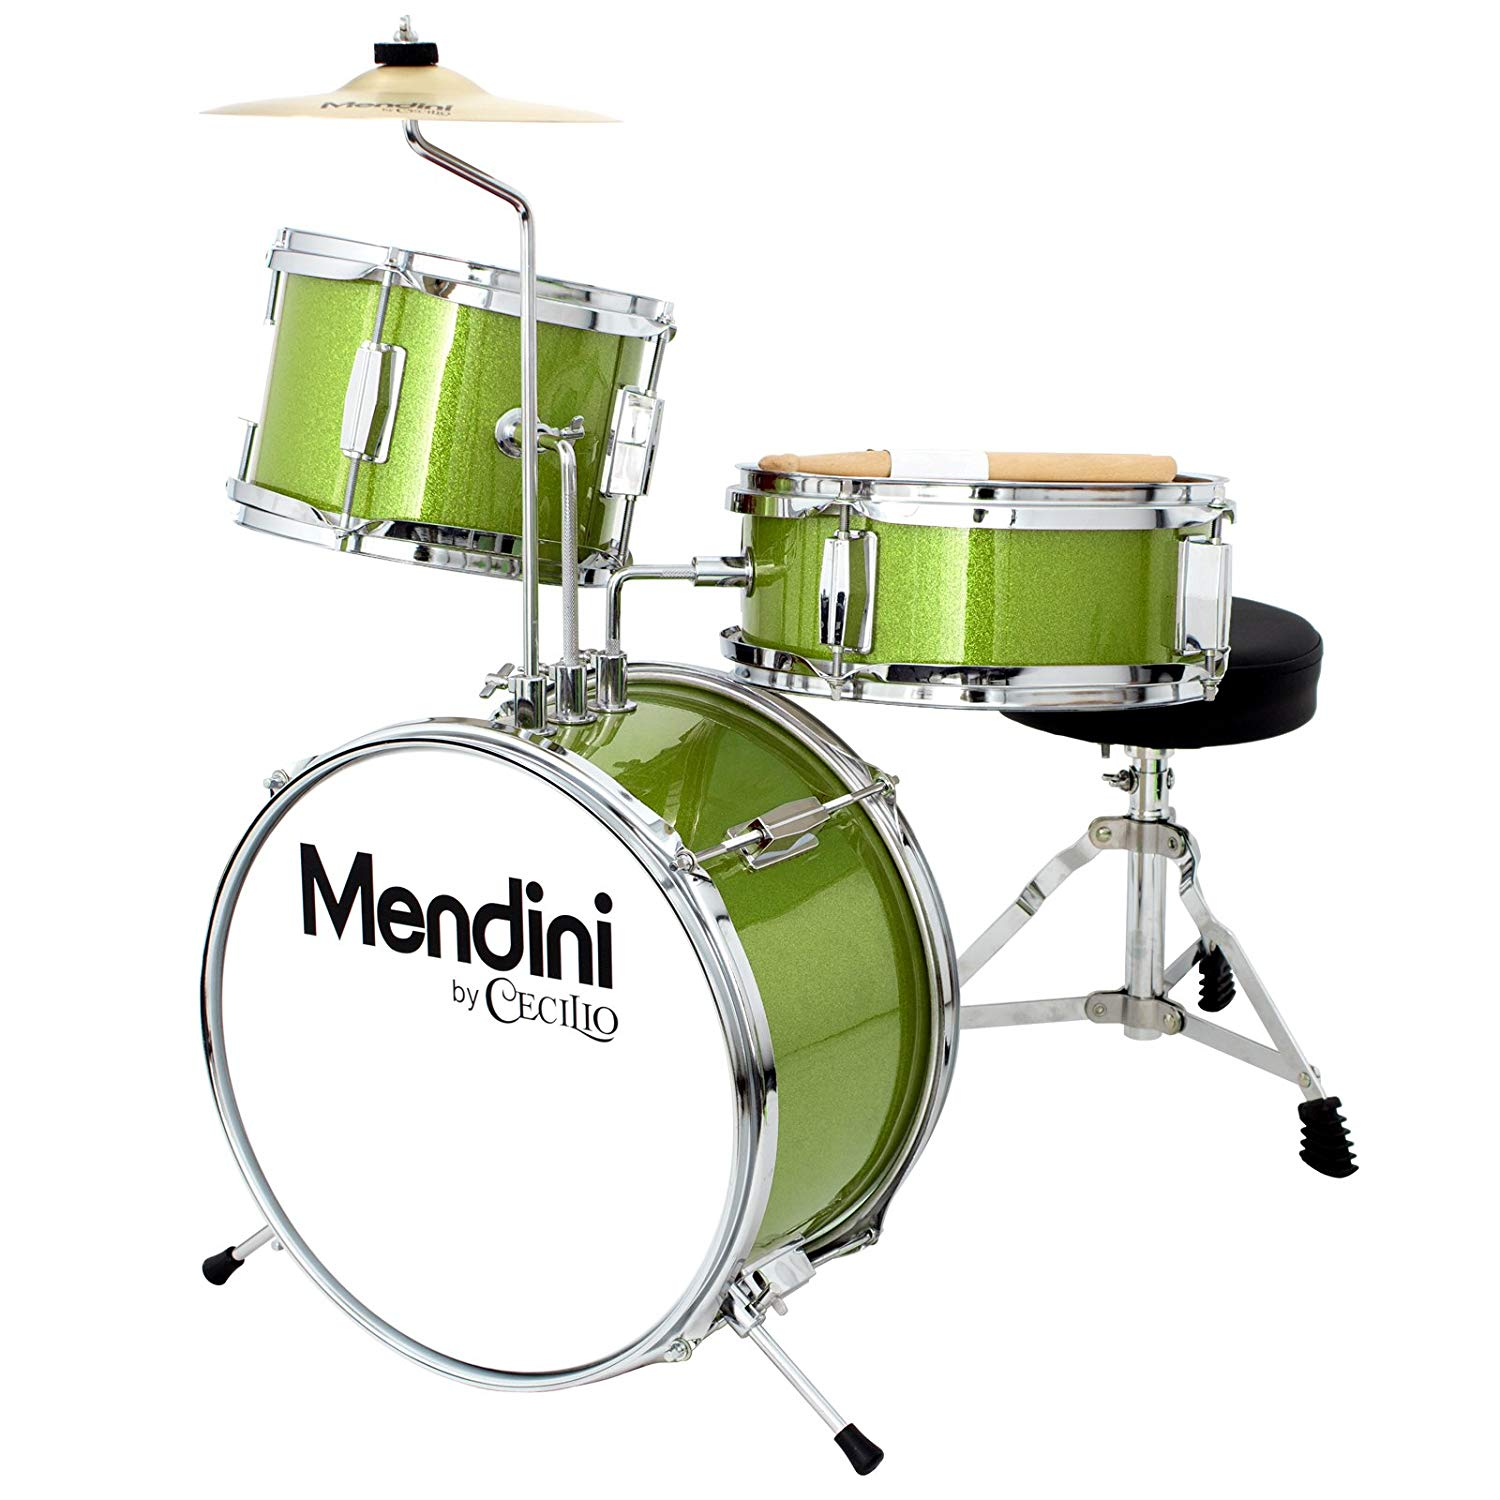 Mendini 3 Drum Set, Metallic Green